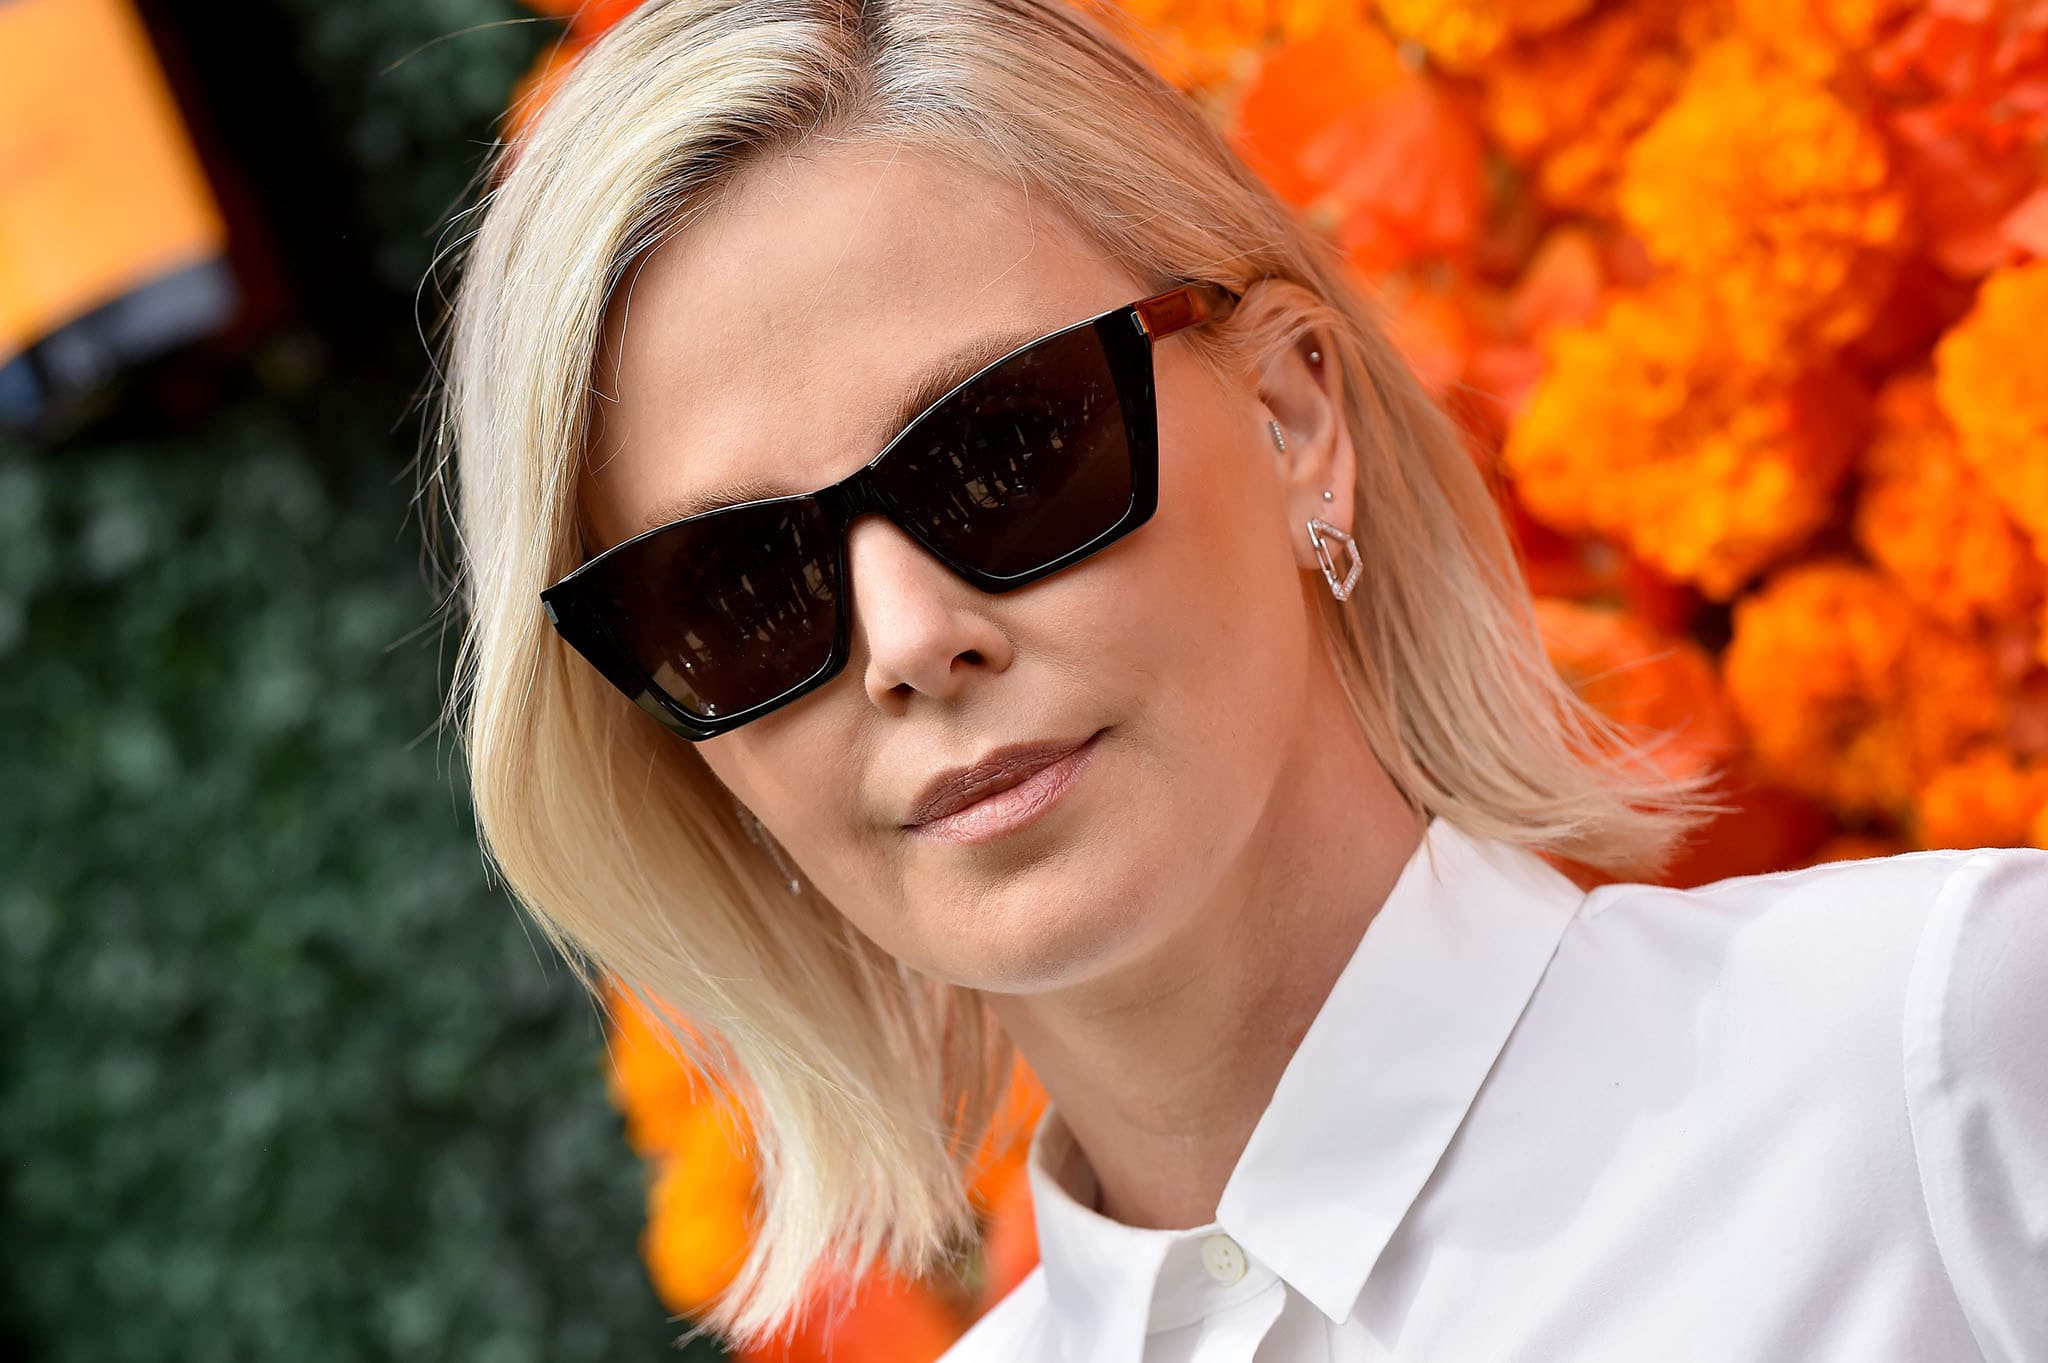 Charlize Theron opts for minimal makeup and wears her blonde hair down with a side parting